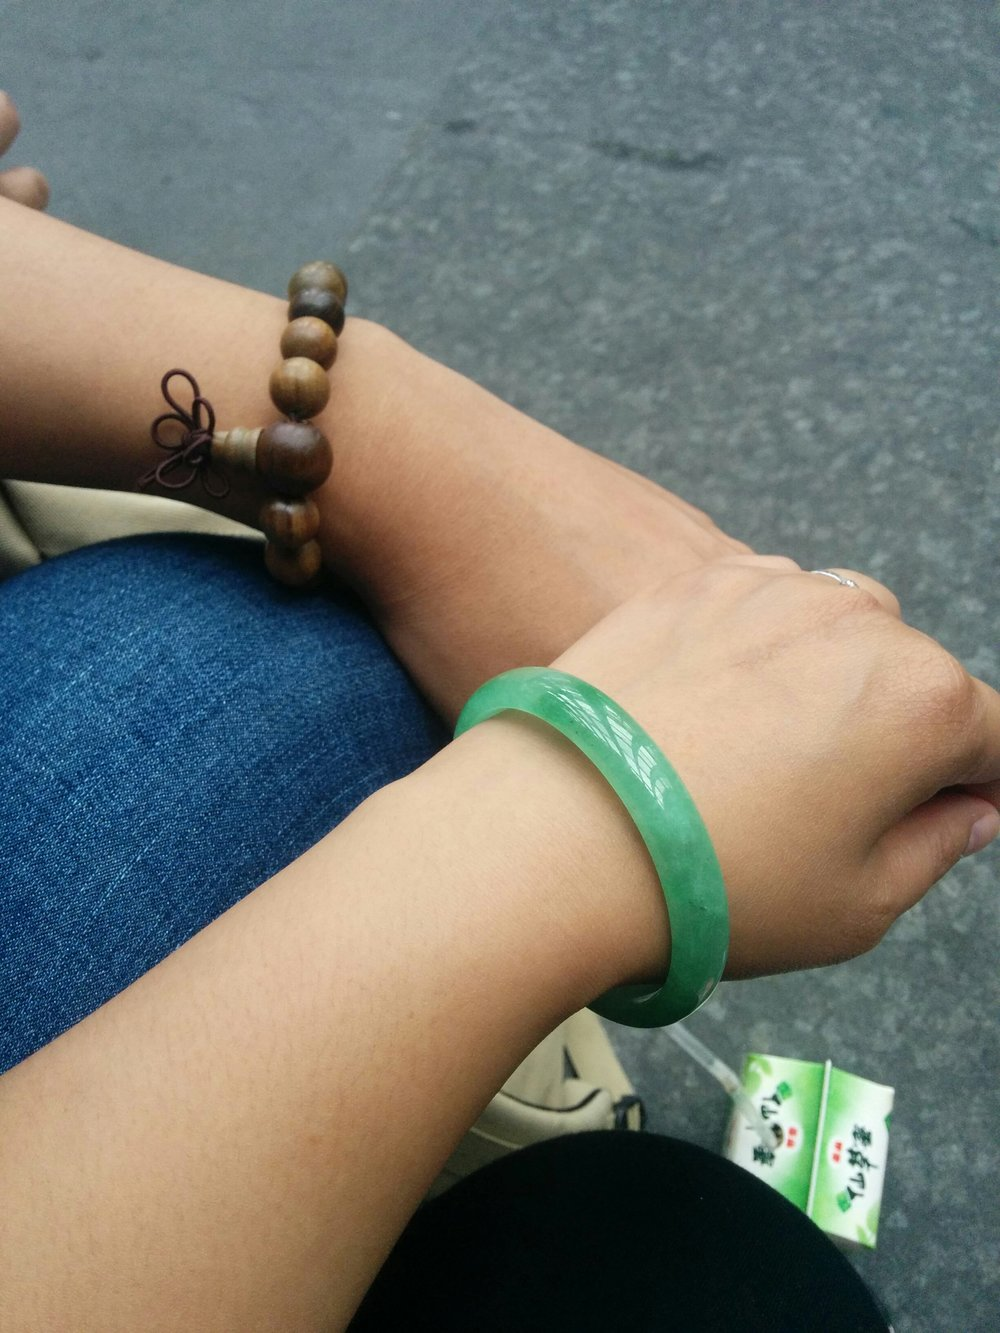 We both got new bracelets from the Taipei Weekend Jade Market 台北市建國假日玉市.